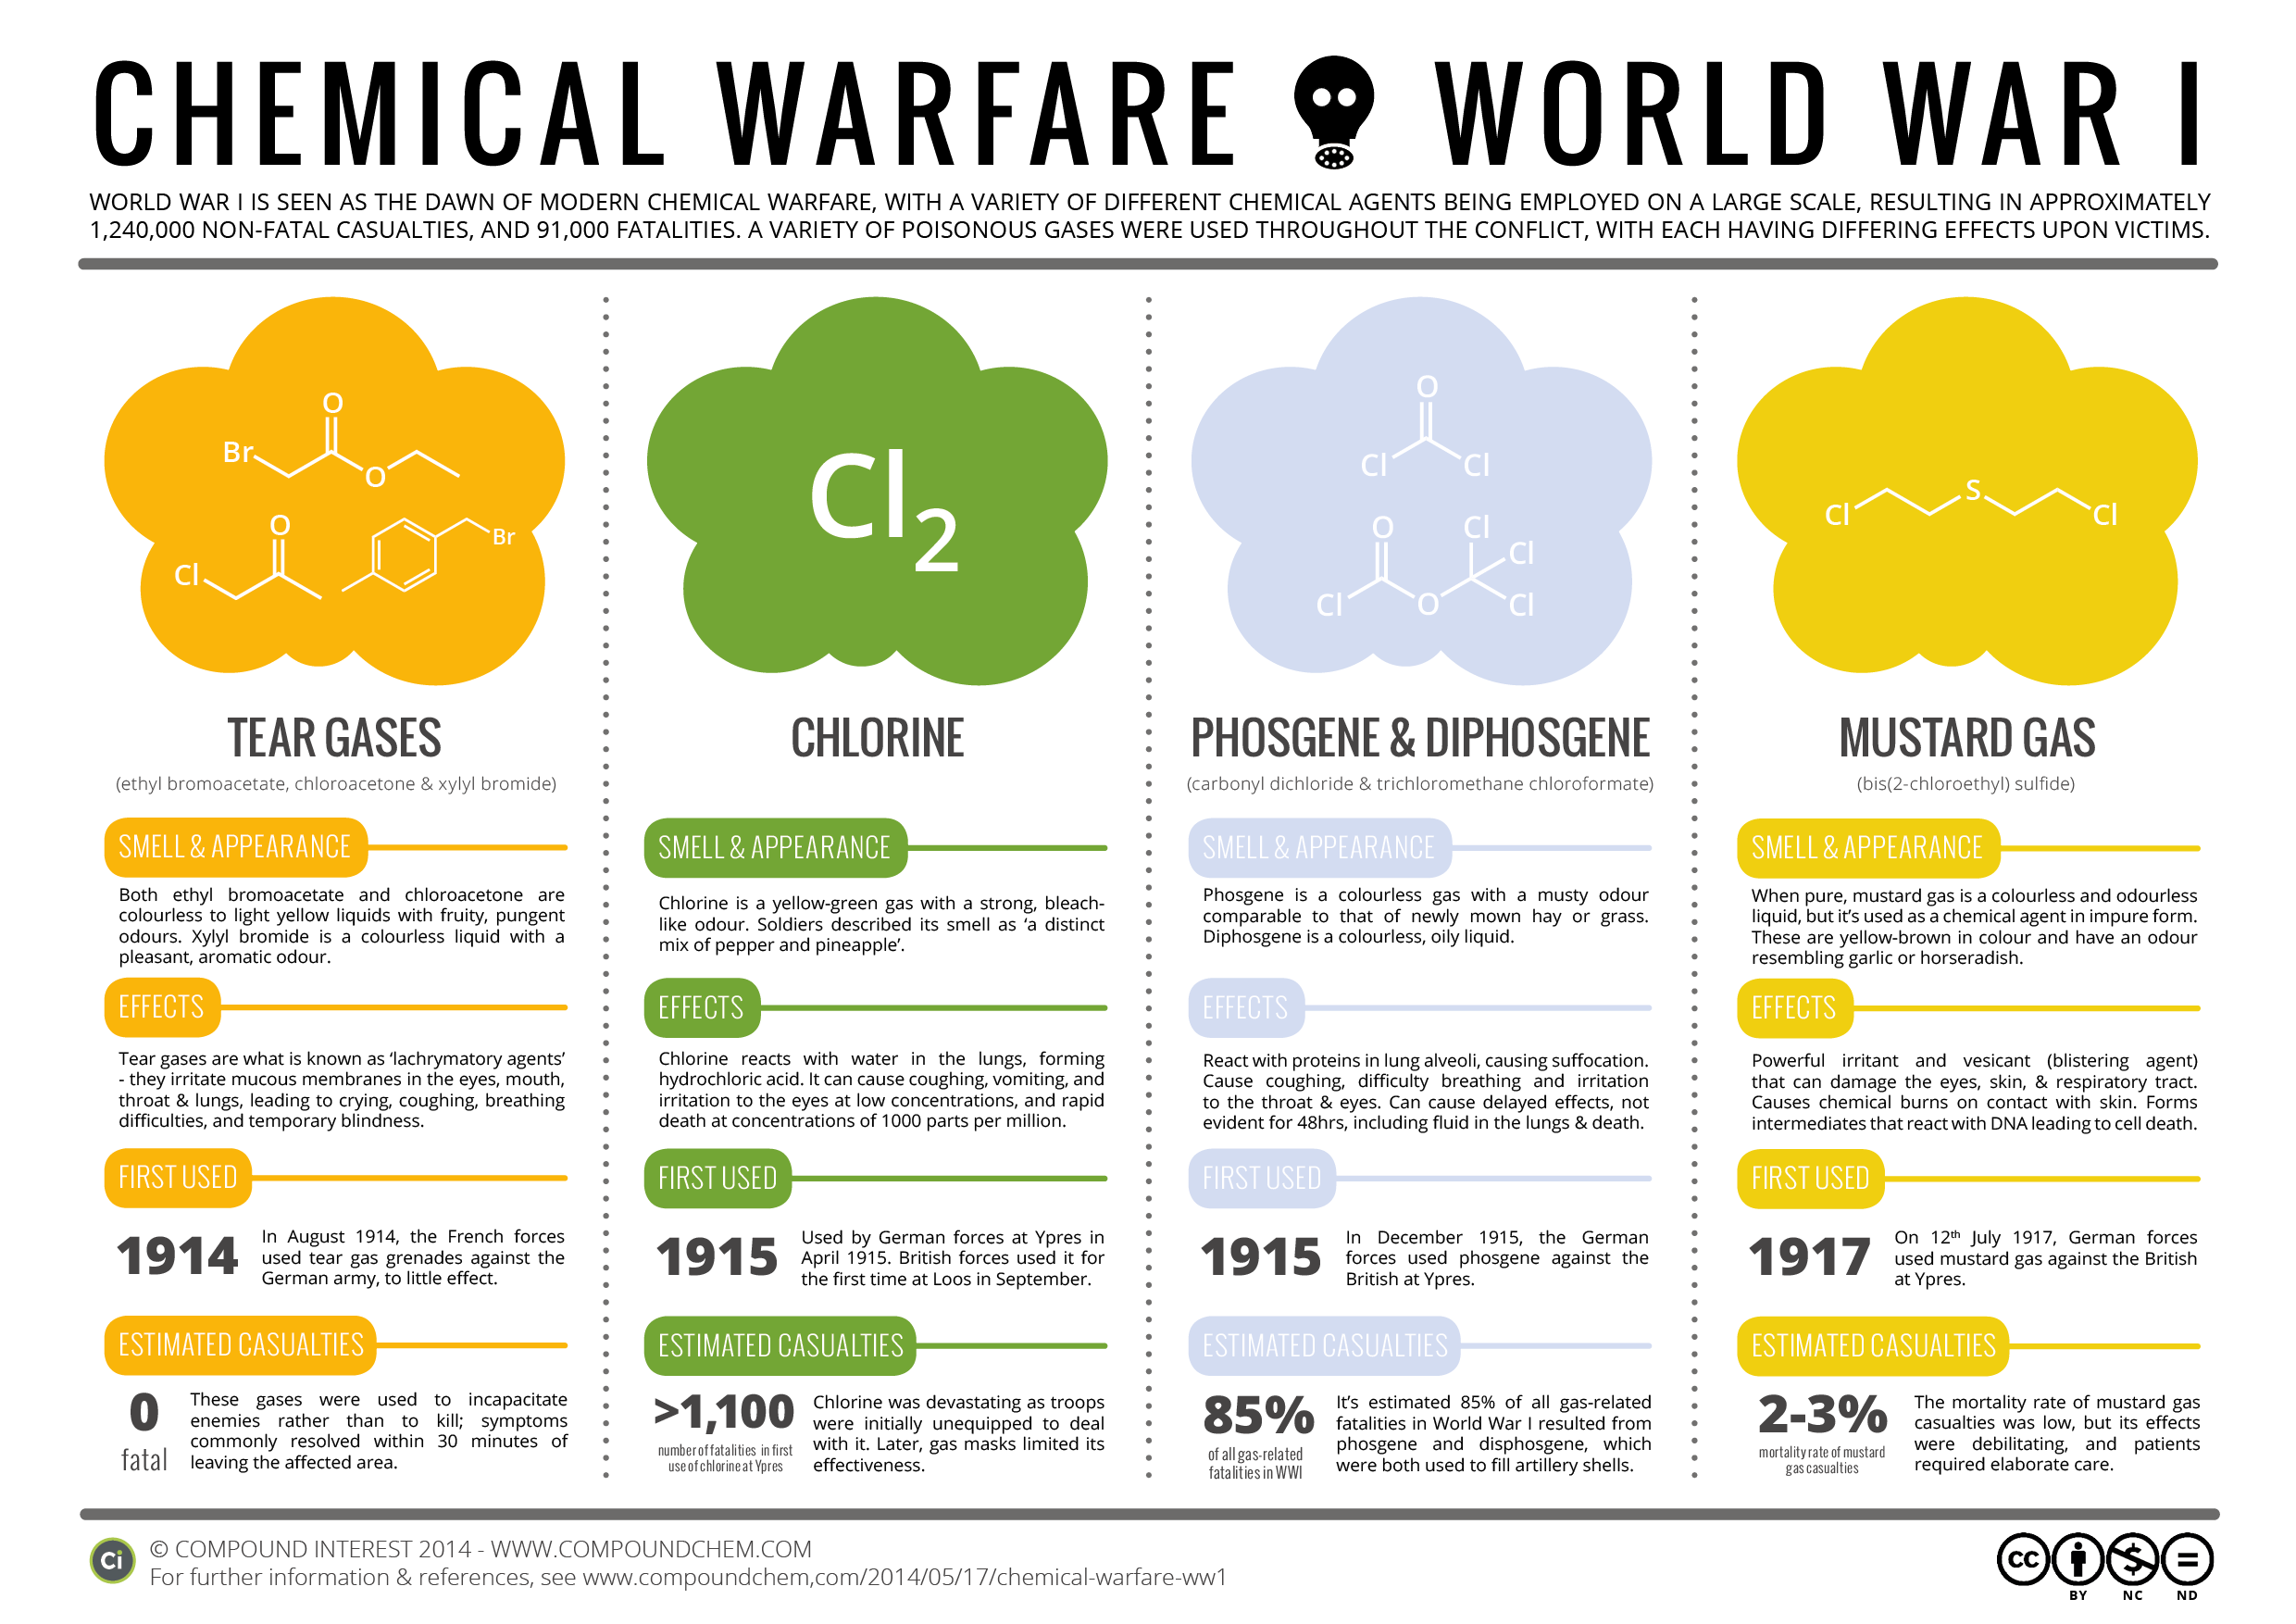 Chemical Warfare Poison Gases In World War 1